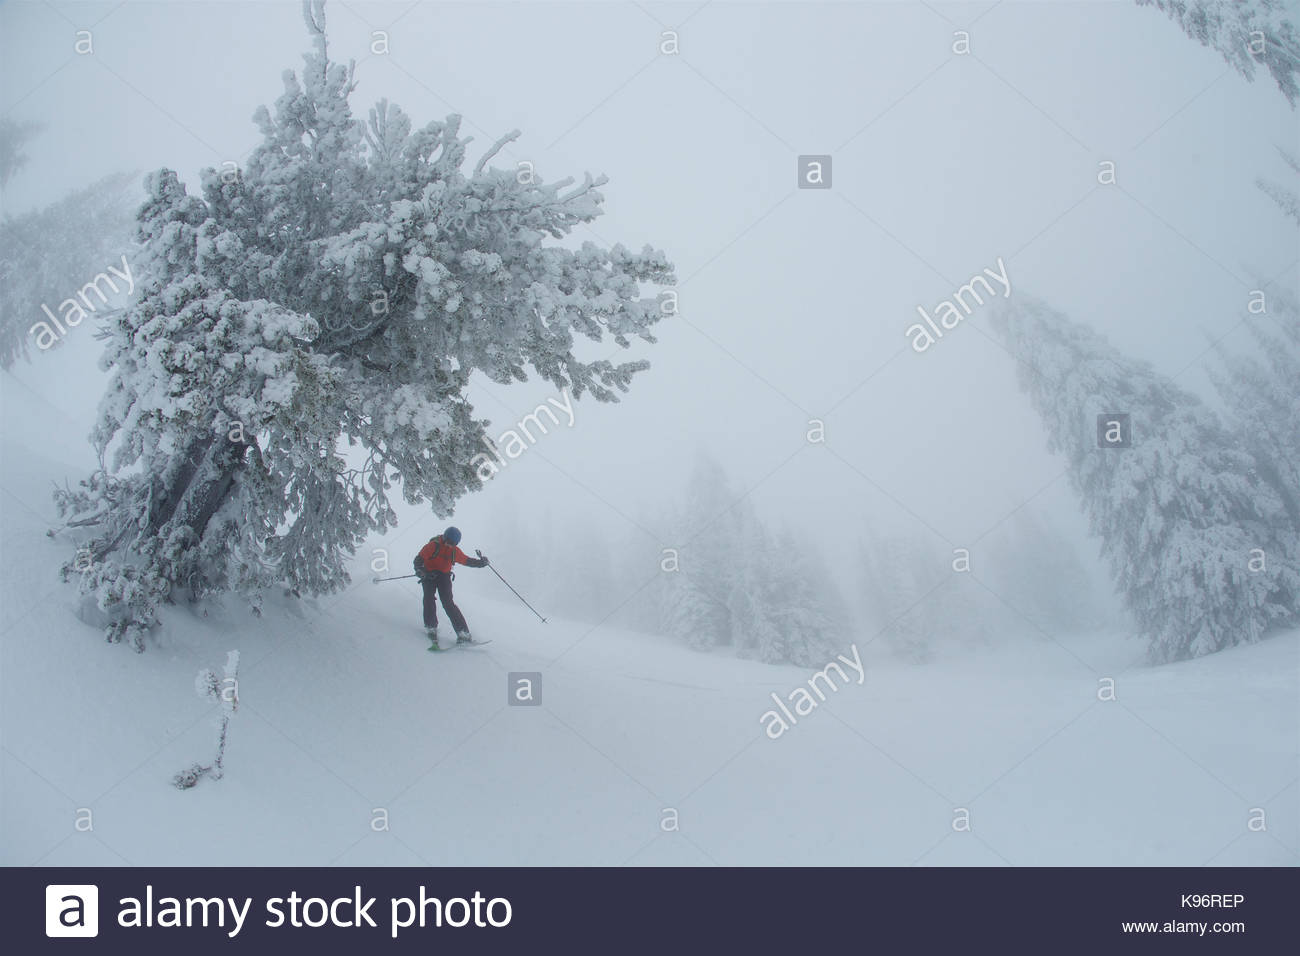 A teen boy skiing in foggy, whiteout conditions near rime covered conifer trees. - Stock Image